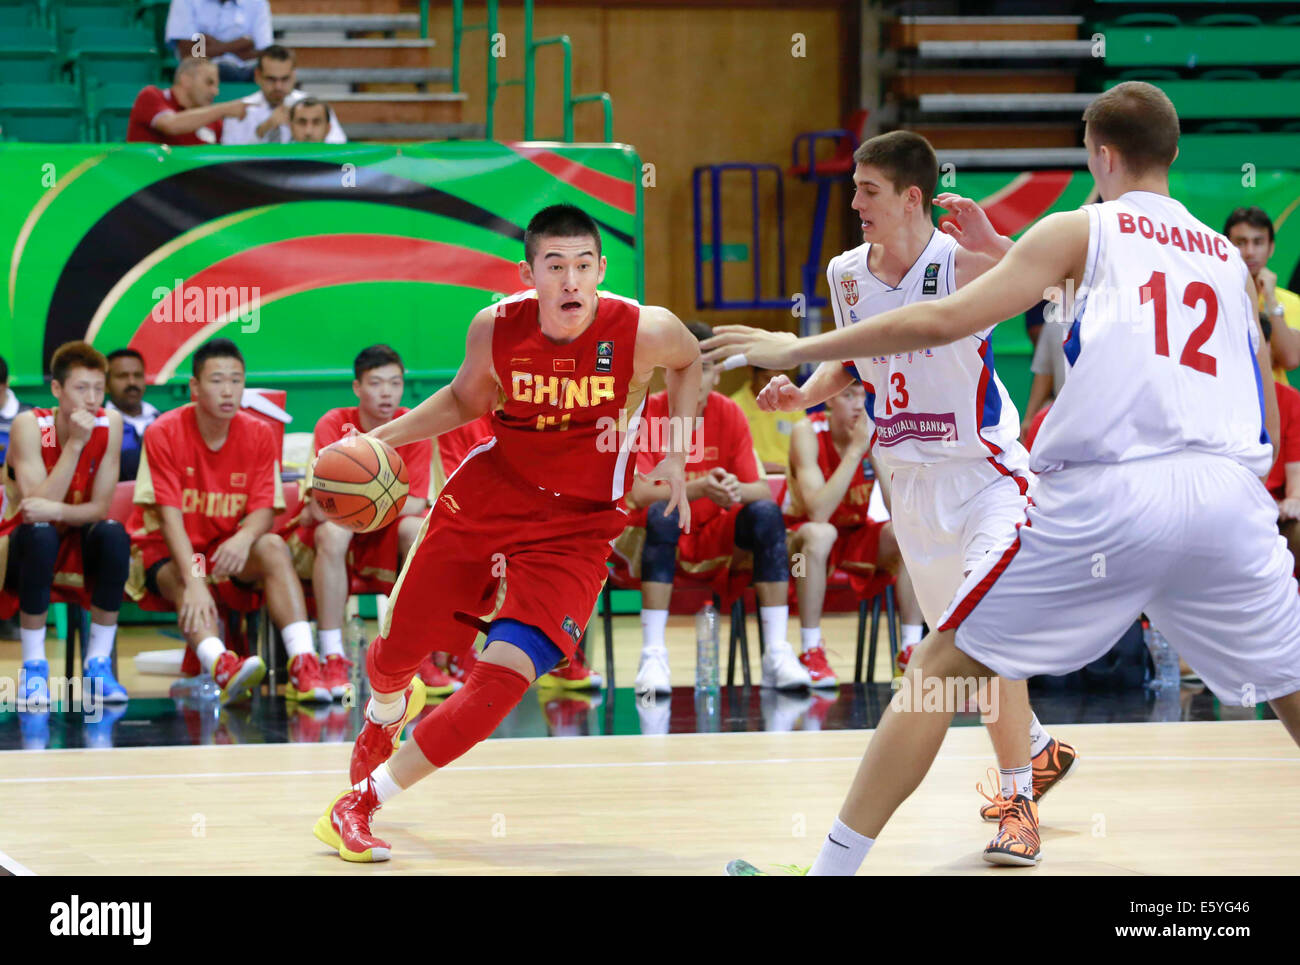 (140809) -- DUBAI, Aug. 9, 2014(Xinhua) -- Fu Hao (L) of China competes during a match between China and Serbia Stock Photo